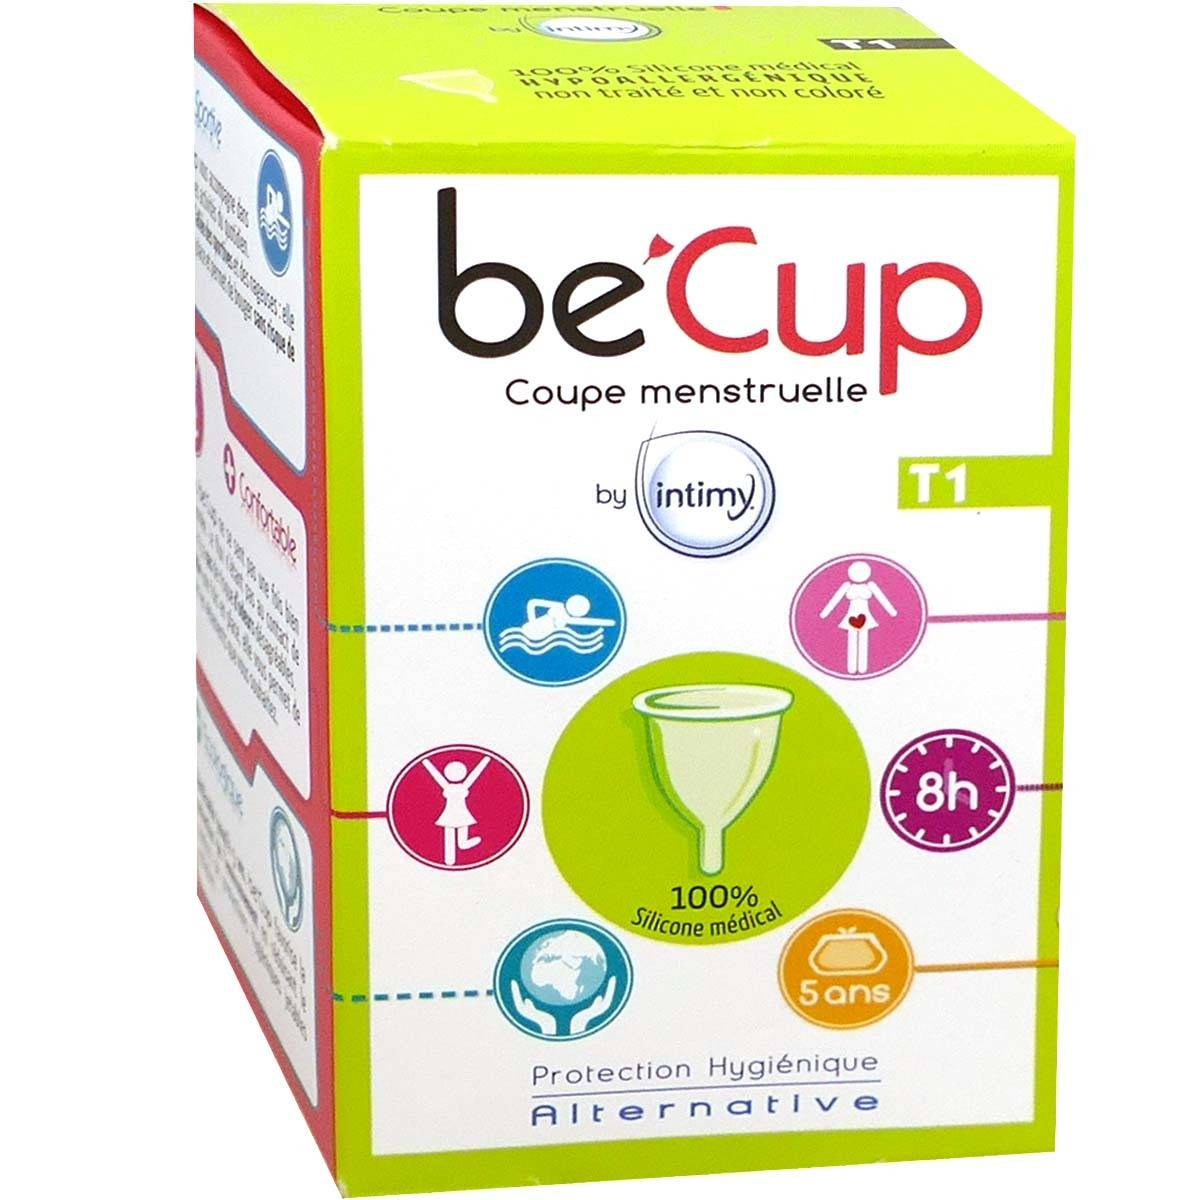 DIVERS Becup coupe menstruelle intimy